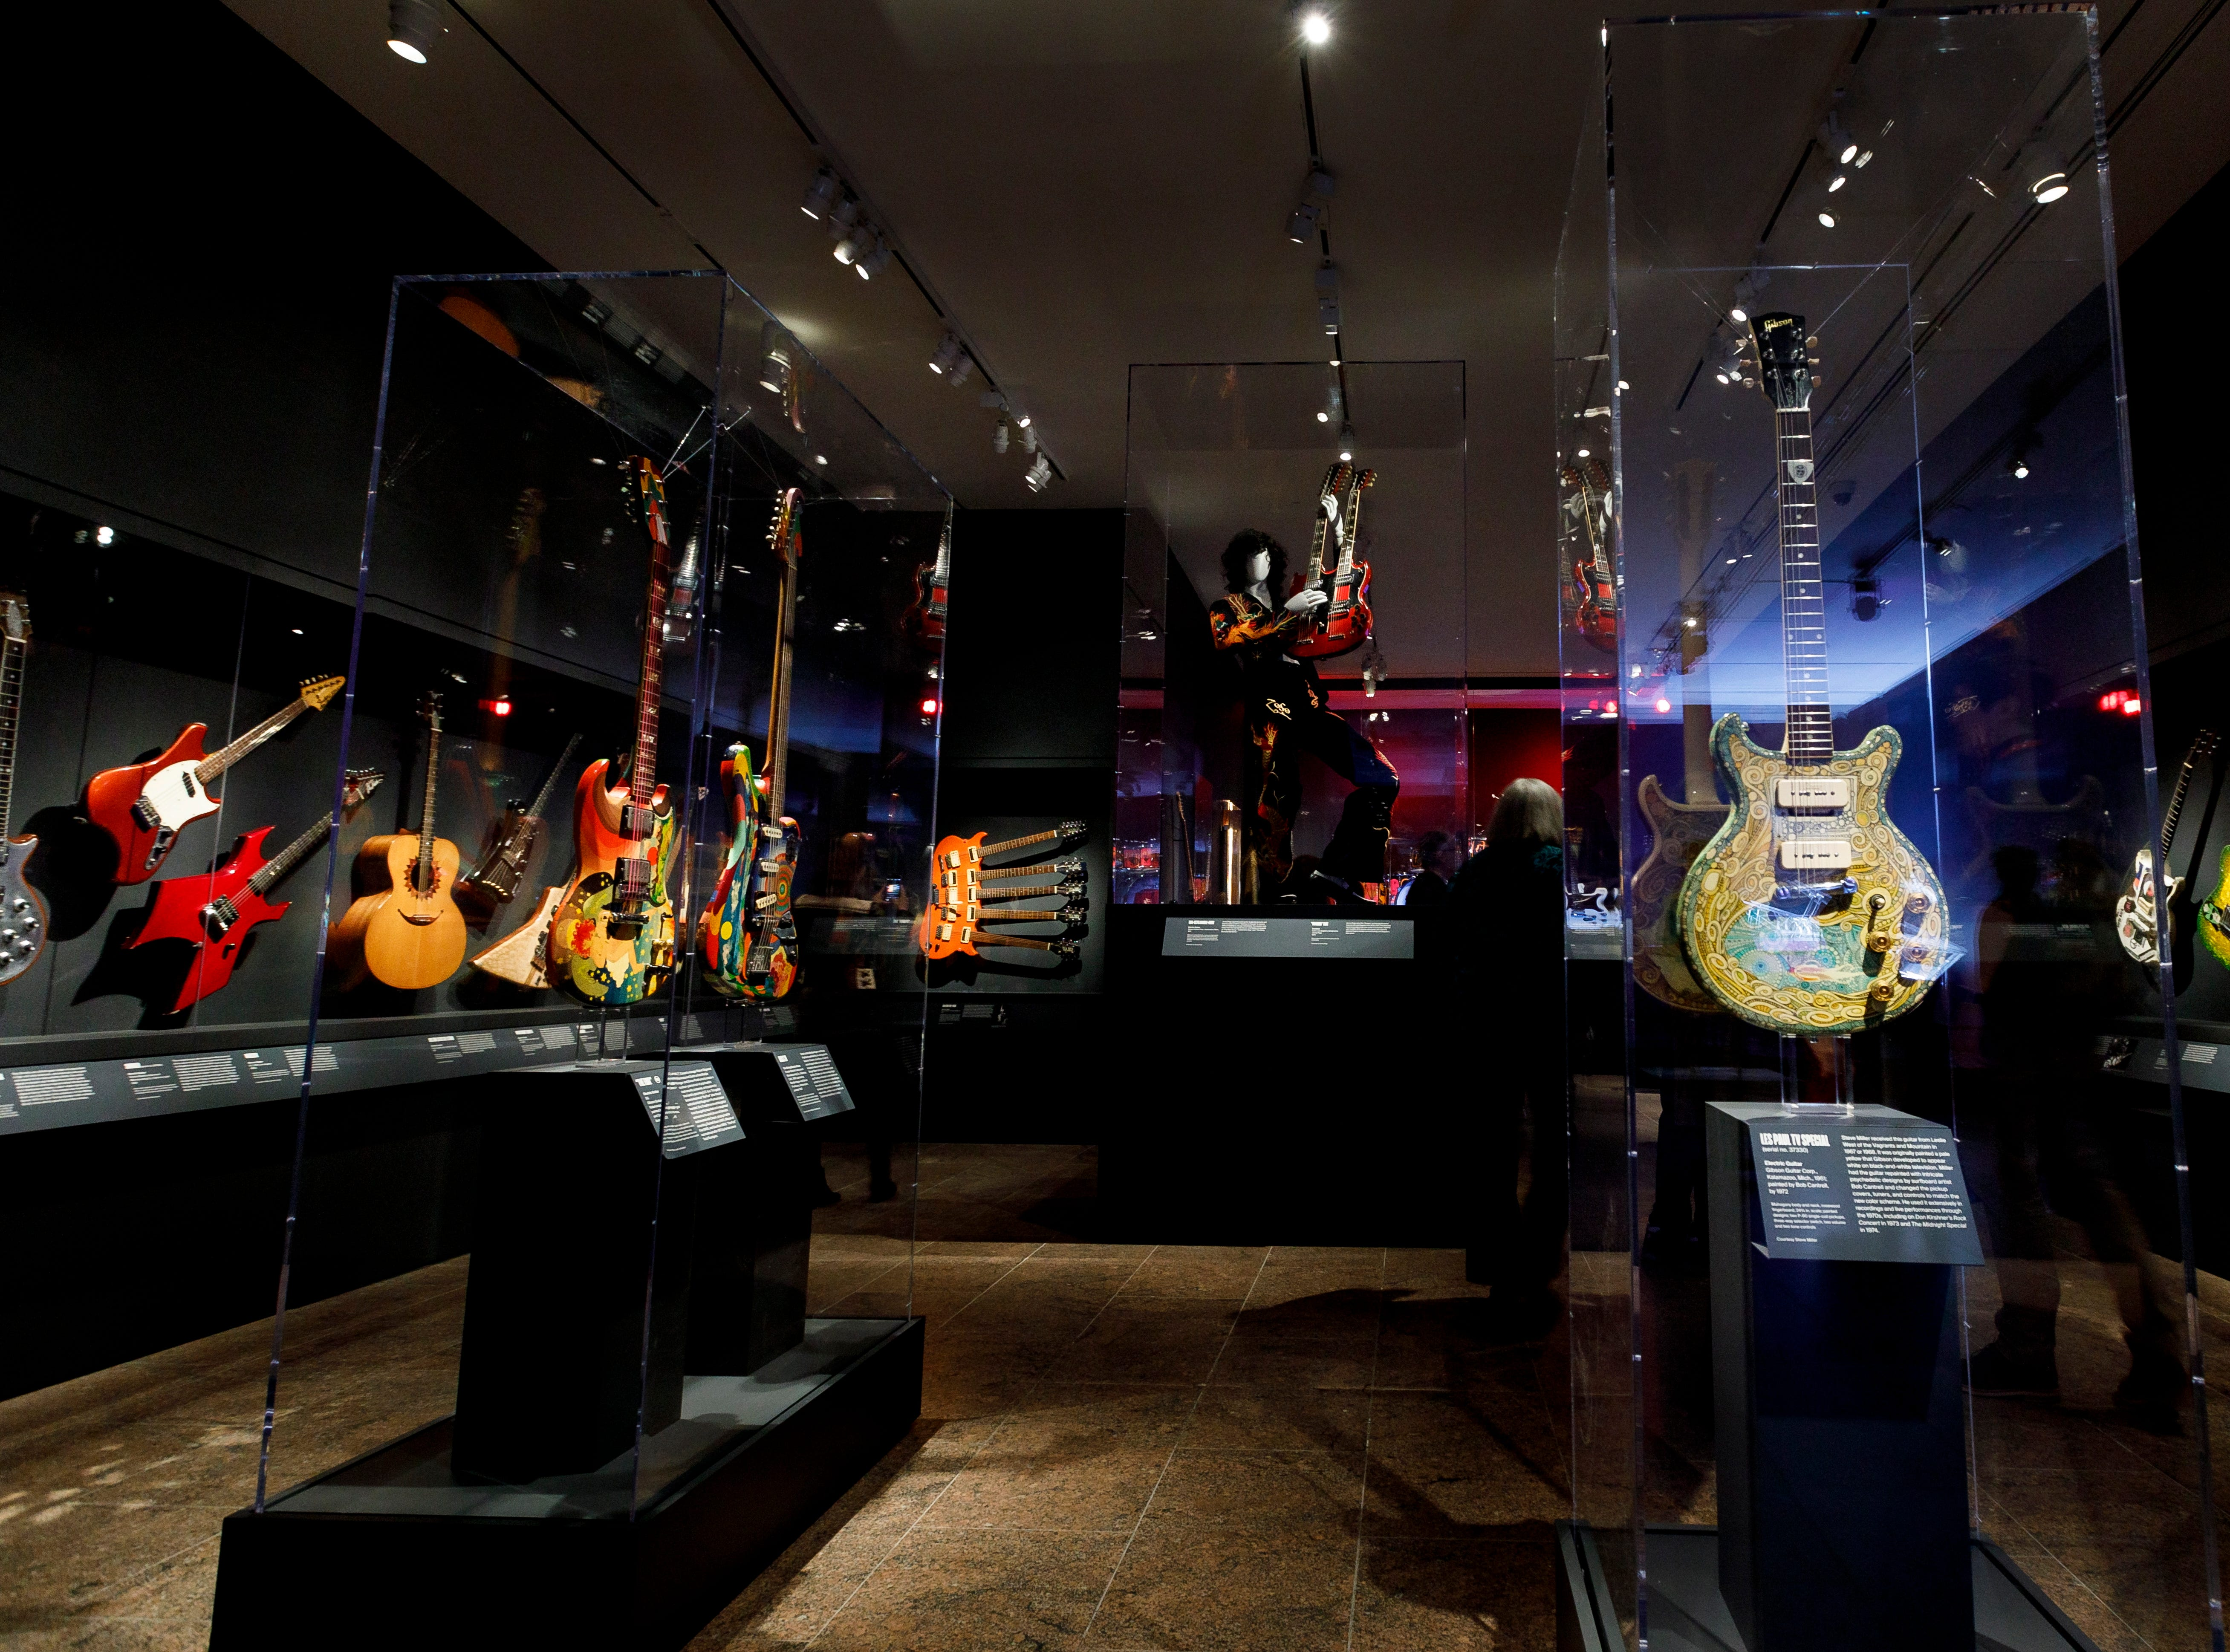 """A view of instruments on display during a preview of the new exhibit """"Play It Loud: Instruments of Rock & Roll"""" at the Metropolitan Museum of Art in New York."""